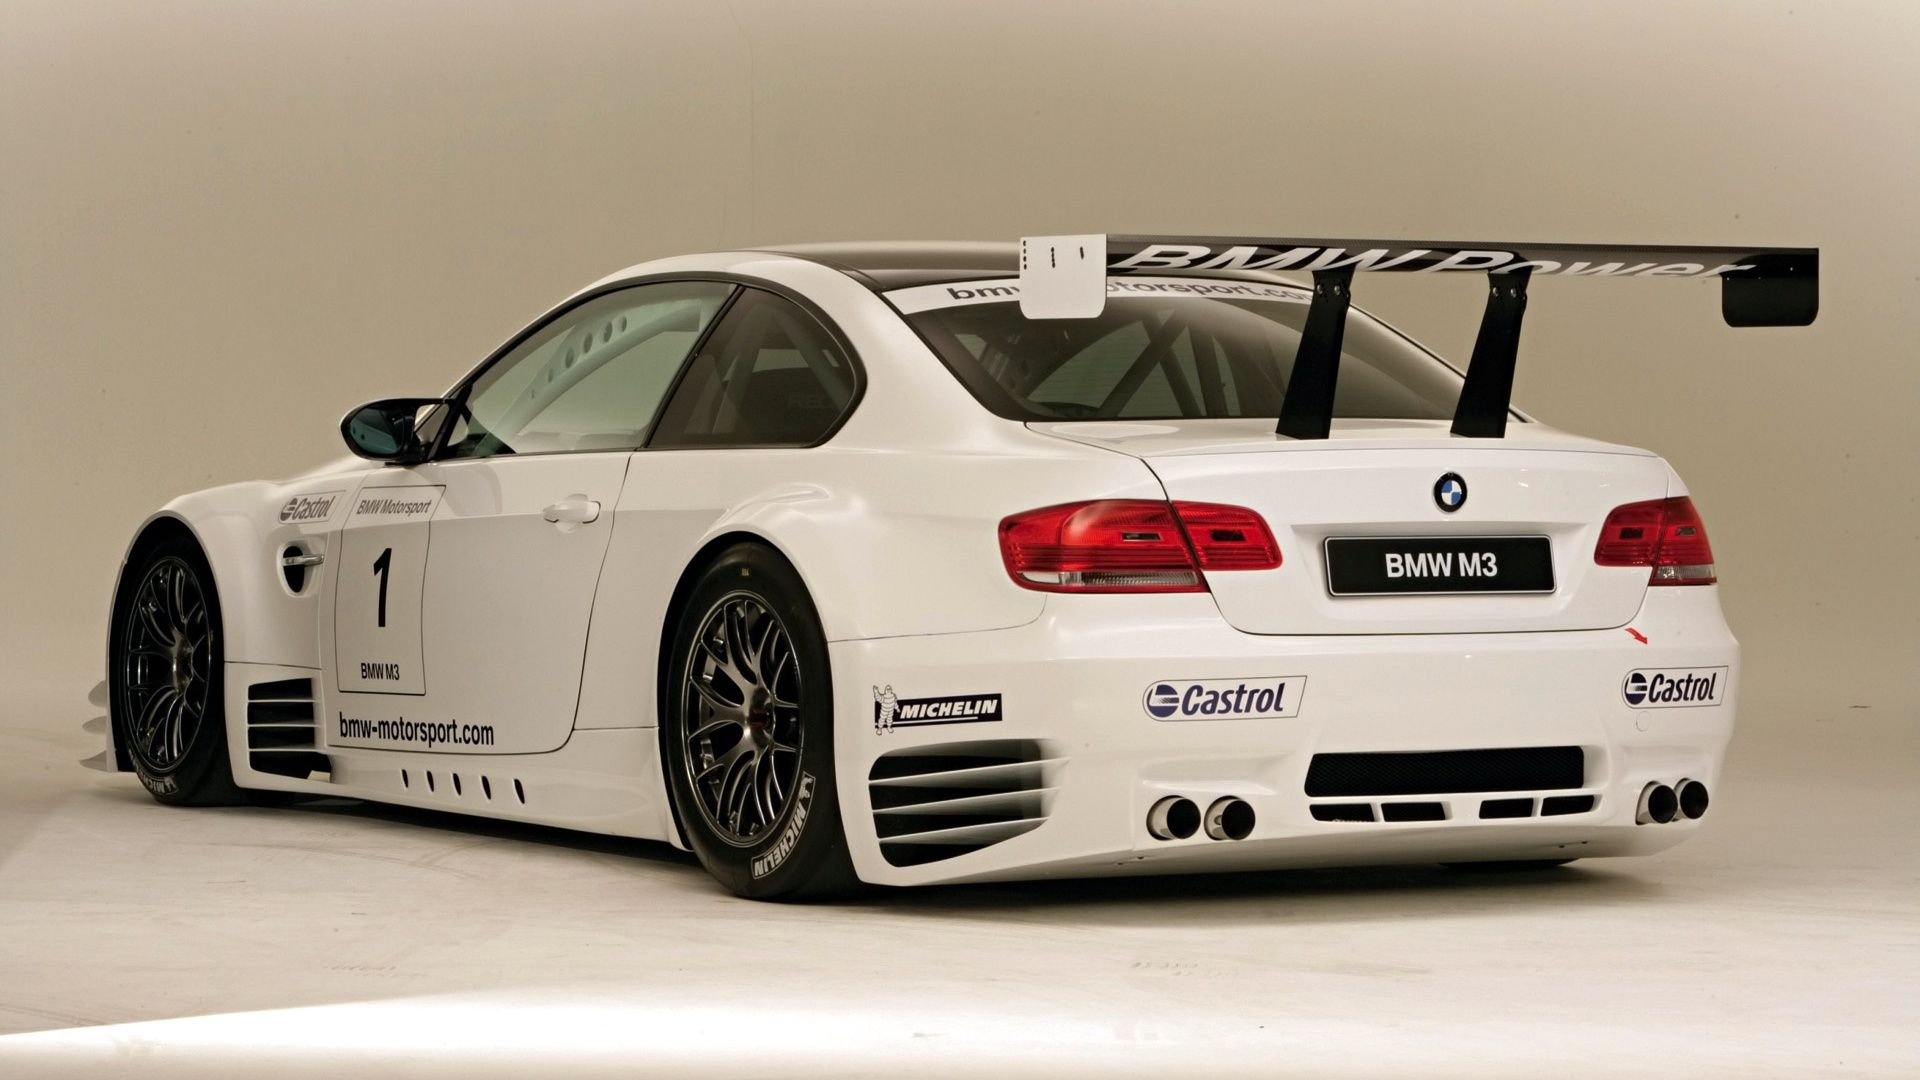 Pin By Hotszots Hd Wallpapers On Vroom Vroom Cars Bmw Cars Bmw M3